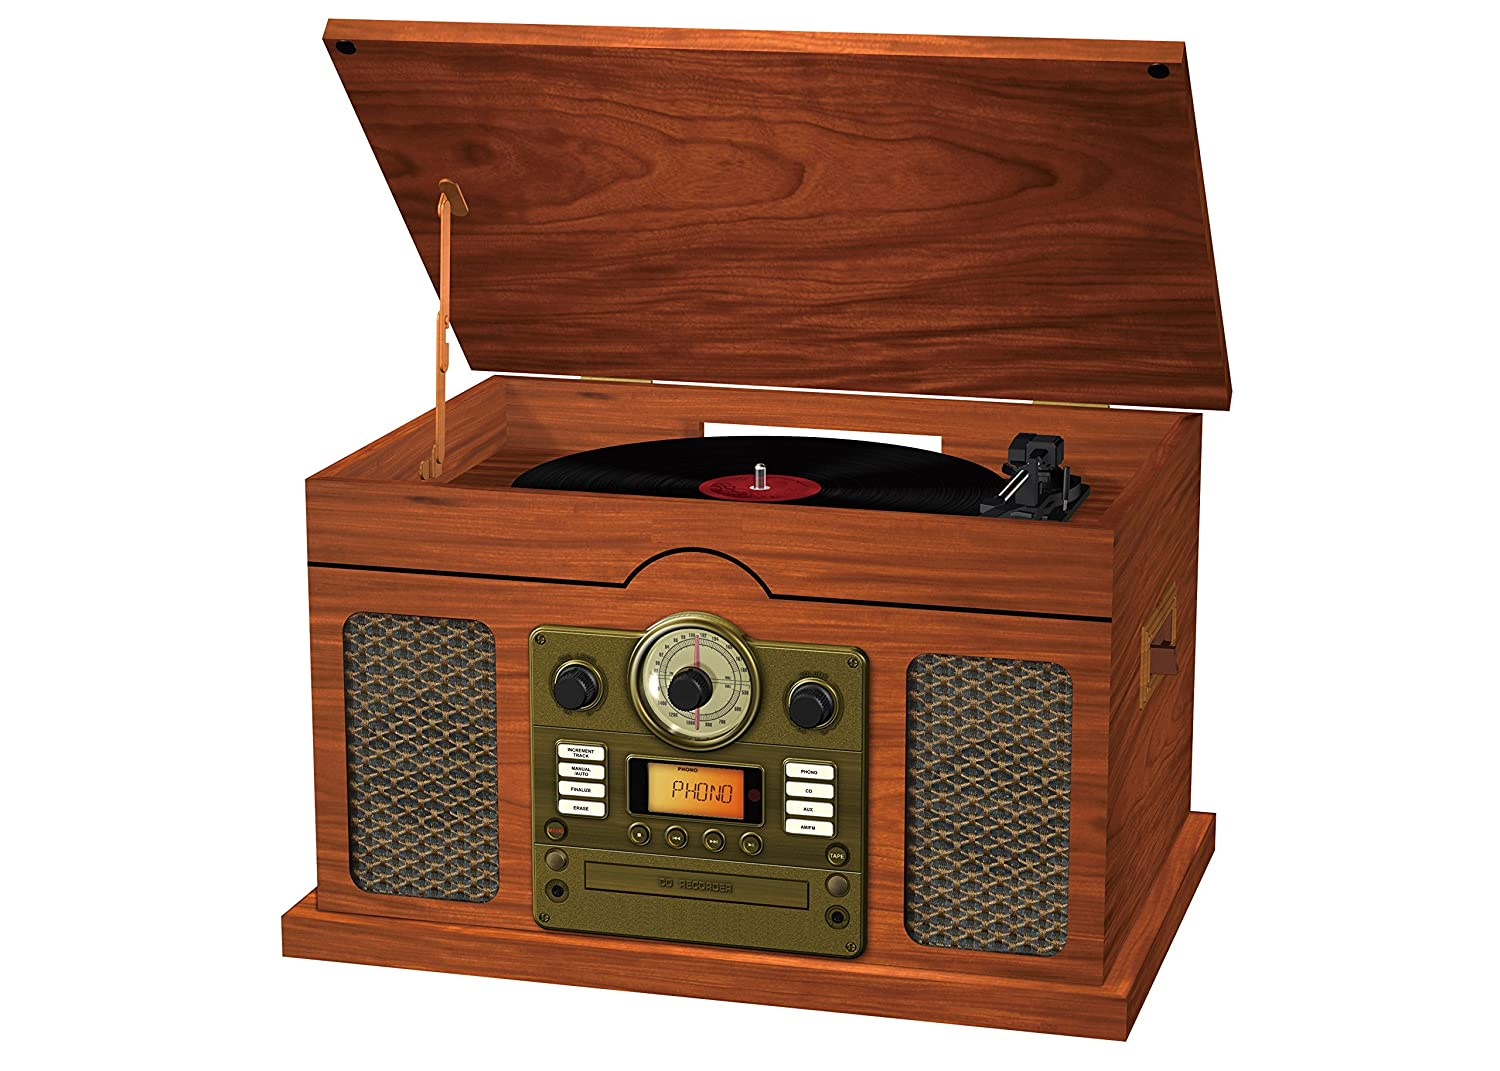 Sylvania Nostalgic 7-in-1 Wooden Turntable, Brown SRCD844